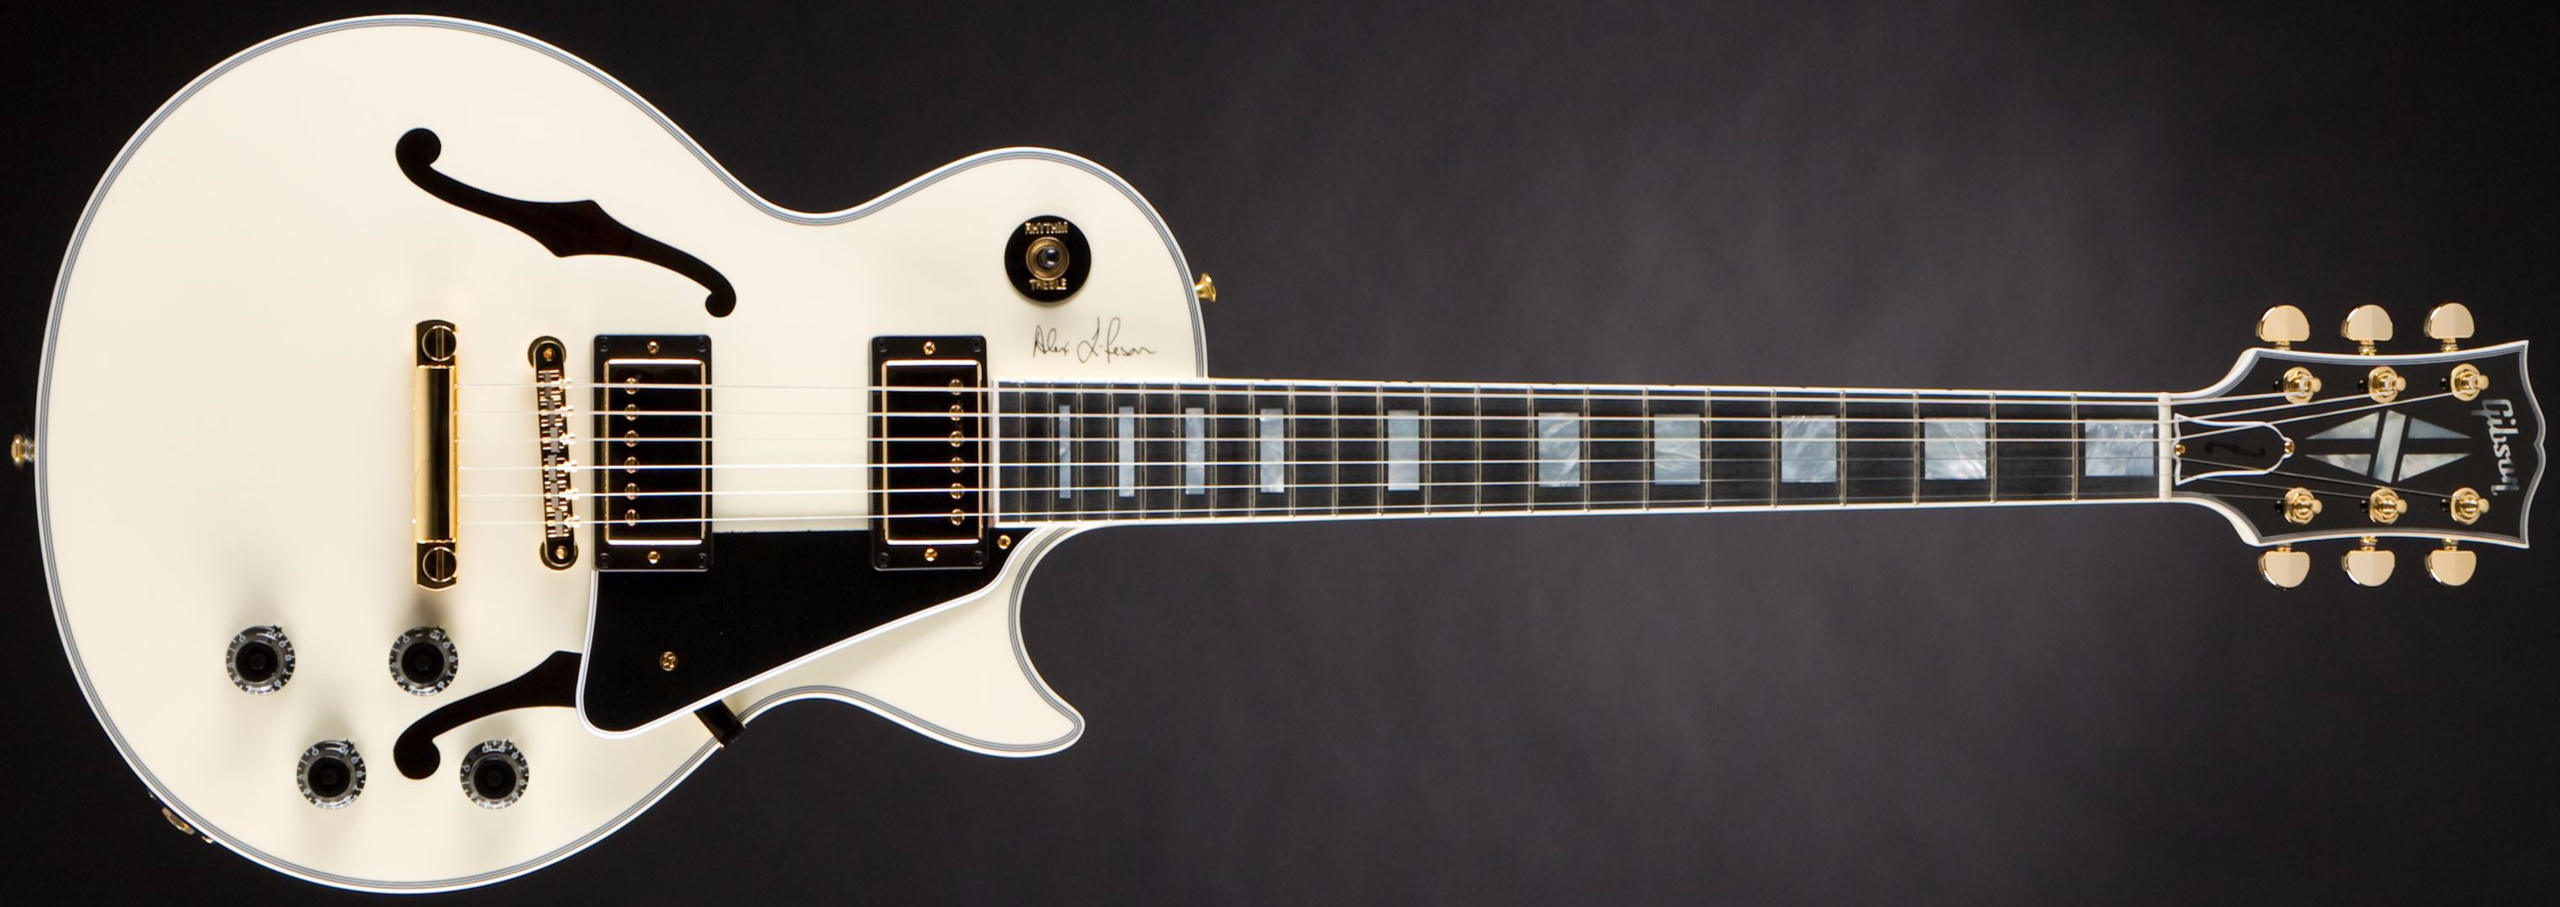 GIBSON Alex Lifeson ES-Les Paul Classic White #87 of 200